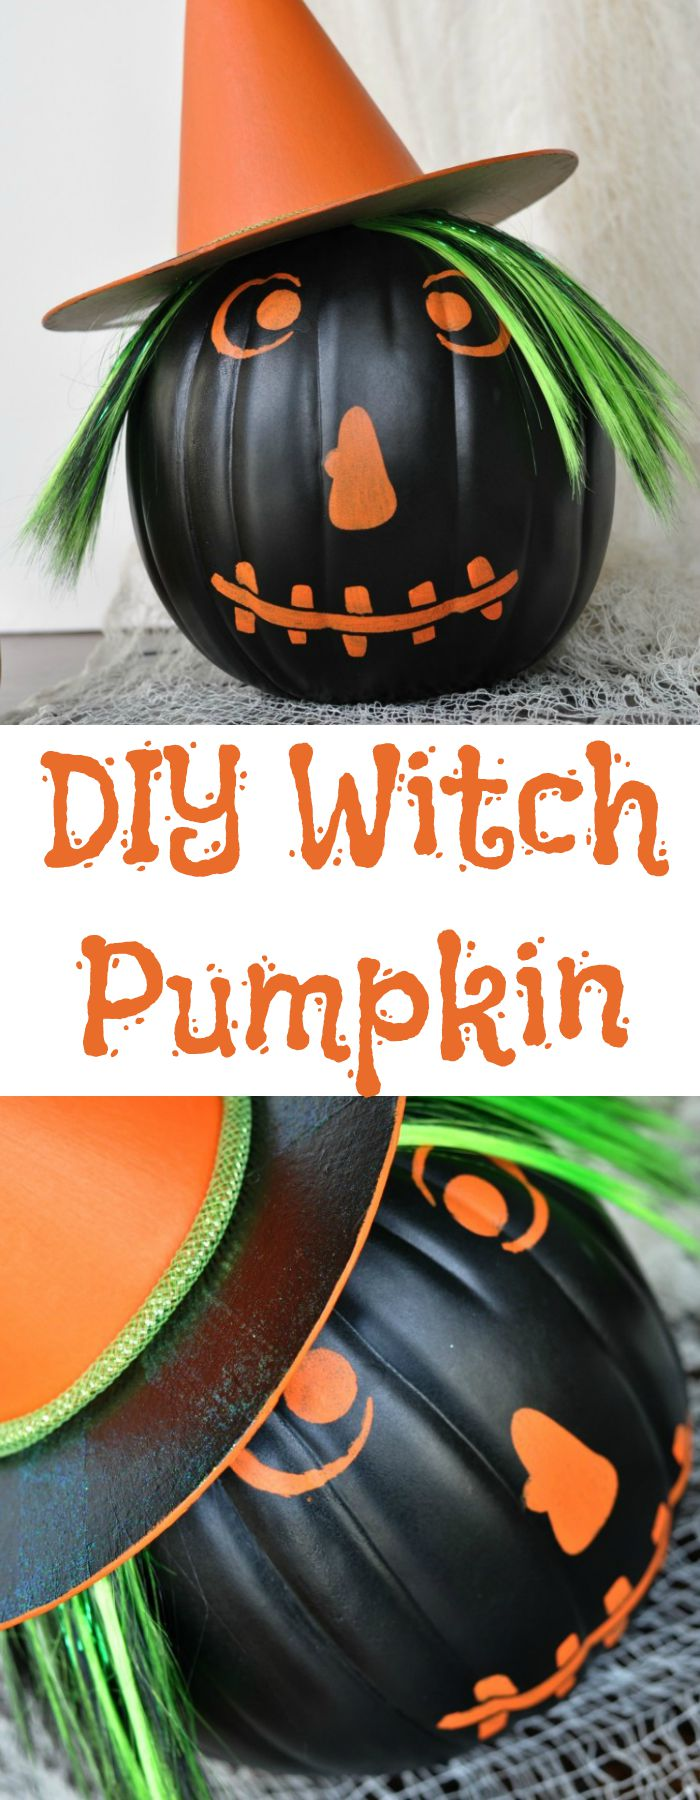 DIY Witch Pumpkin